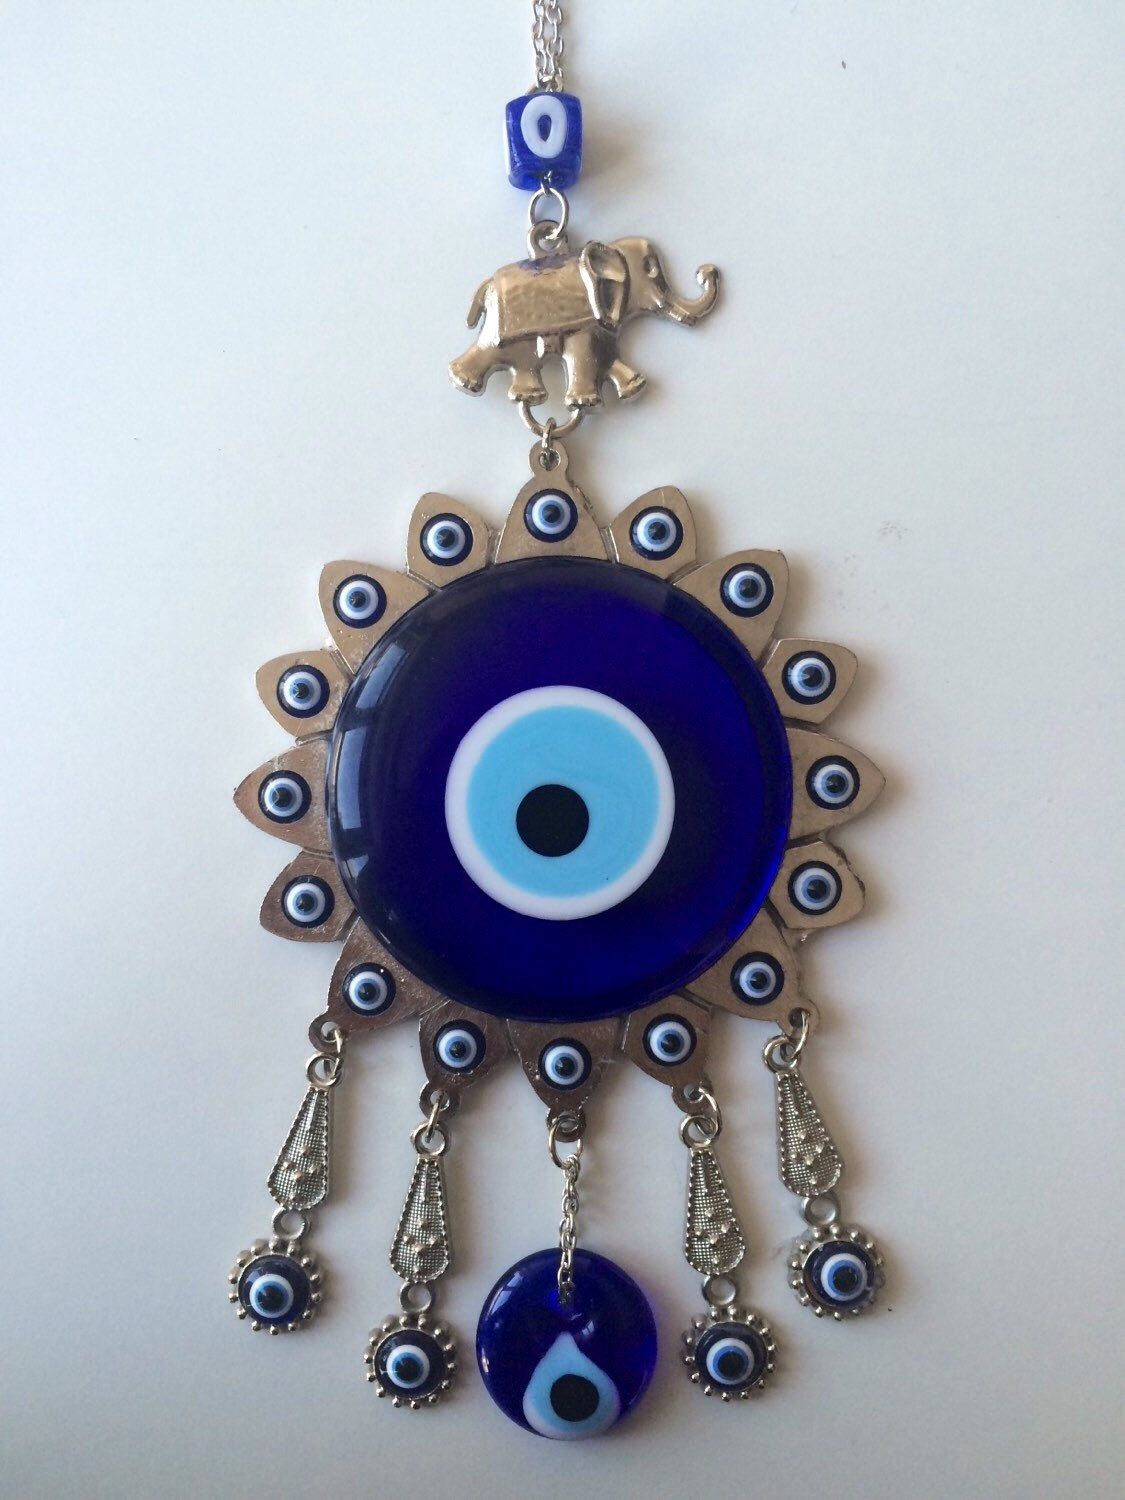 Evil eye wall decor turkish evil eye by urbanjewelleryshop on evil eye wall decor turkish evil eye by urbanjewelleryshop on etsy amipublicfo Gallery